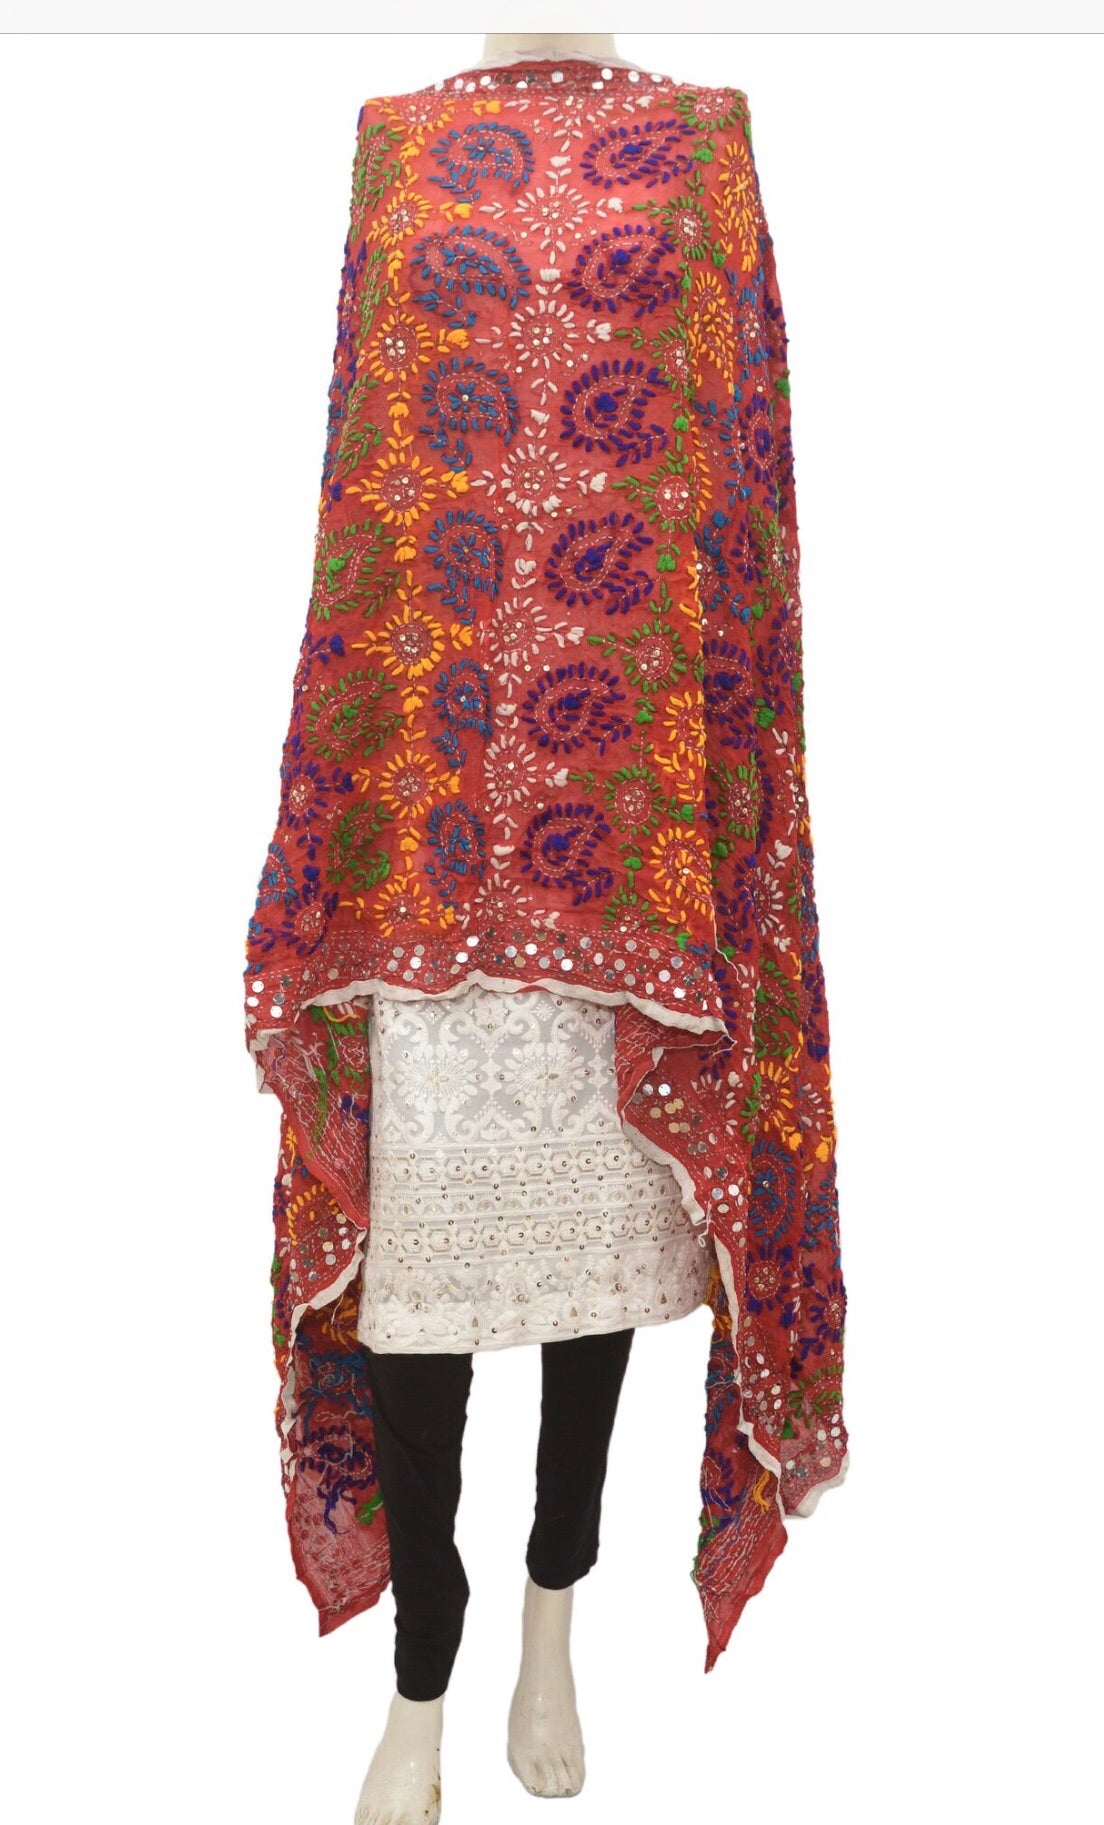 Embroidered dupatta #fdn913-141